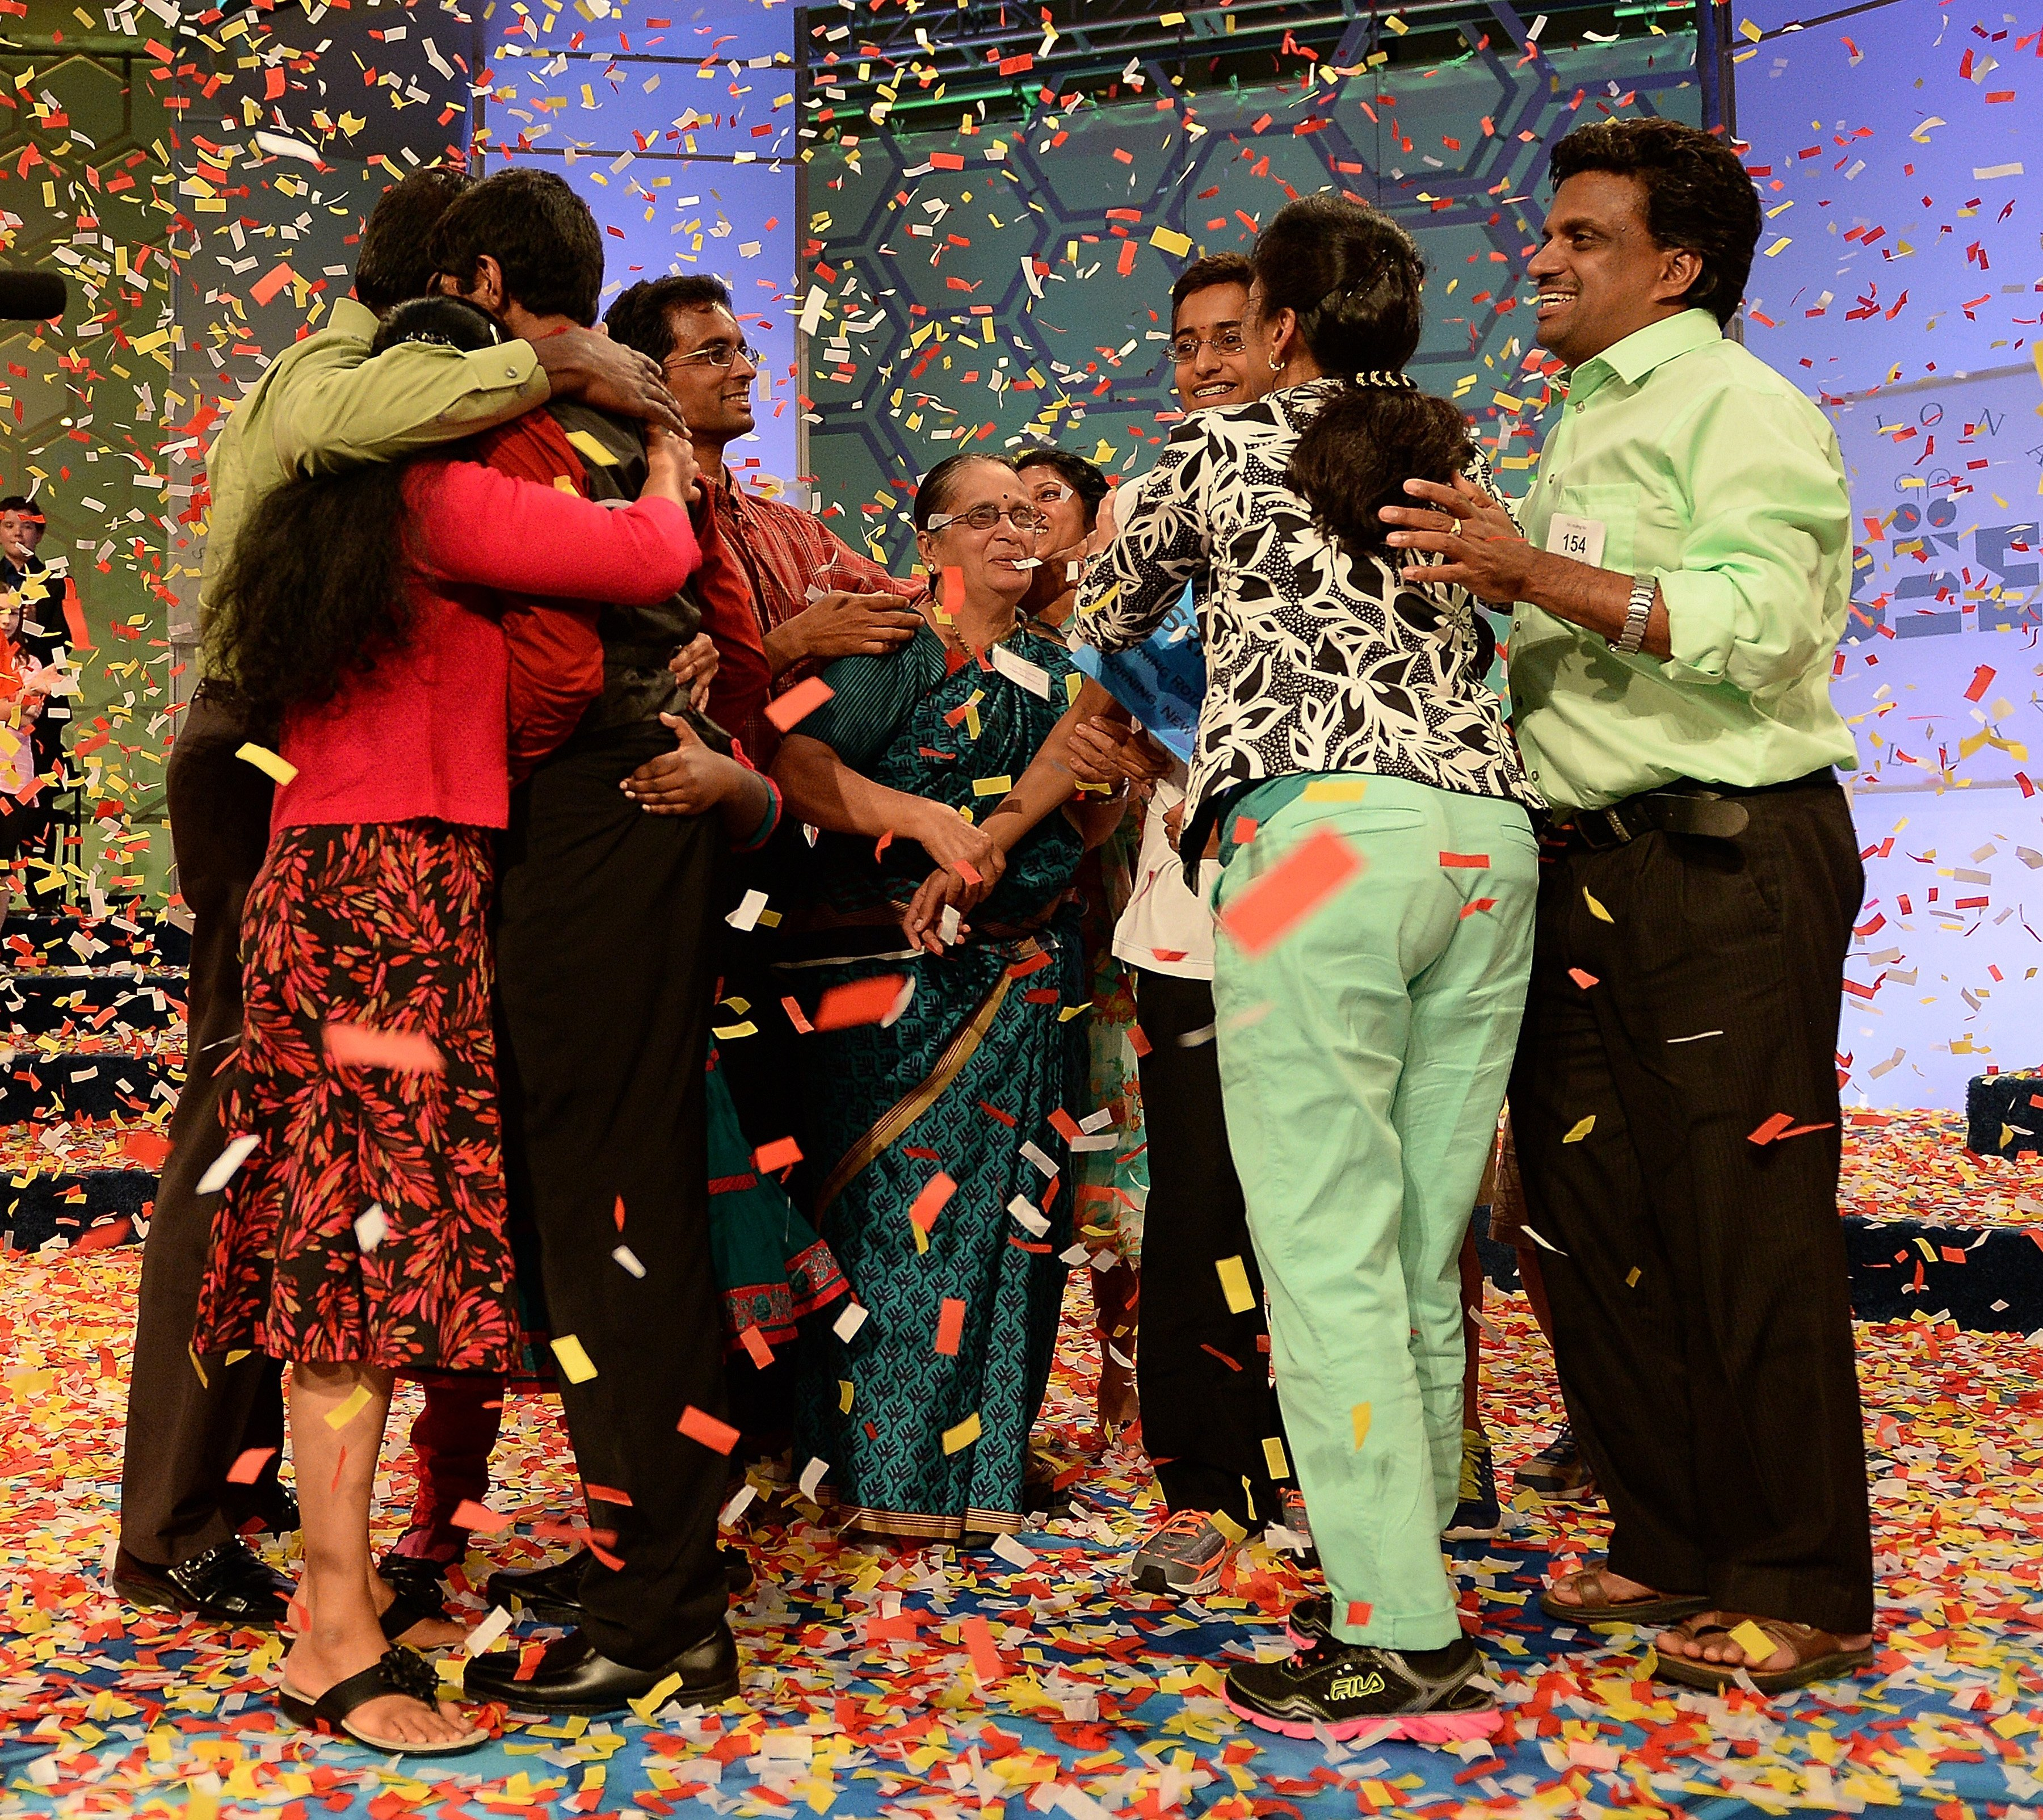 Family members come on stage with spellers Ansun Sujoe, of Fort Worth, left, and Sriram Hathwar, of Painted Post, N.Y., as they celebrate as co-winners of the the 2014 Scripps National Spelling Bee in National Harbor, Md. on May 29, 2014.